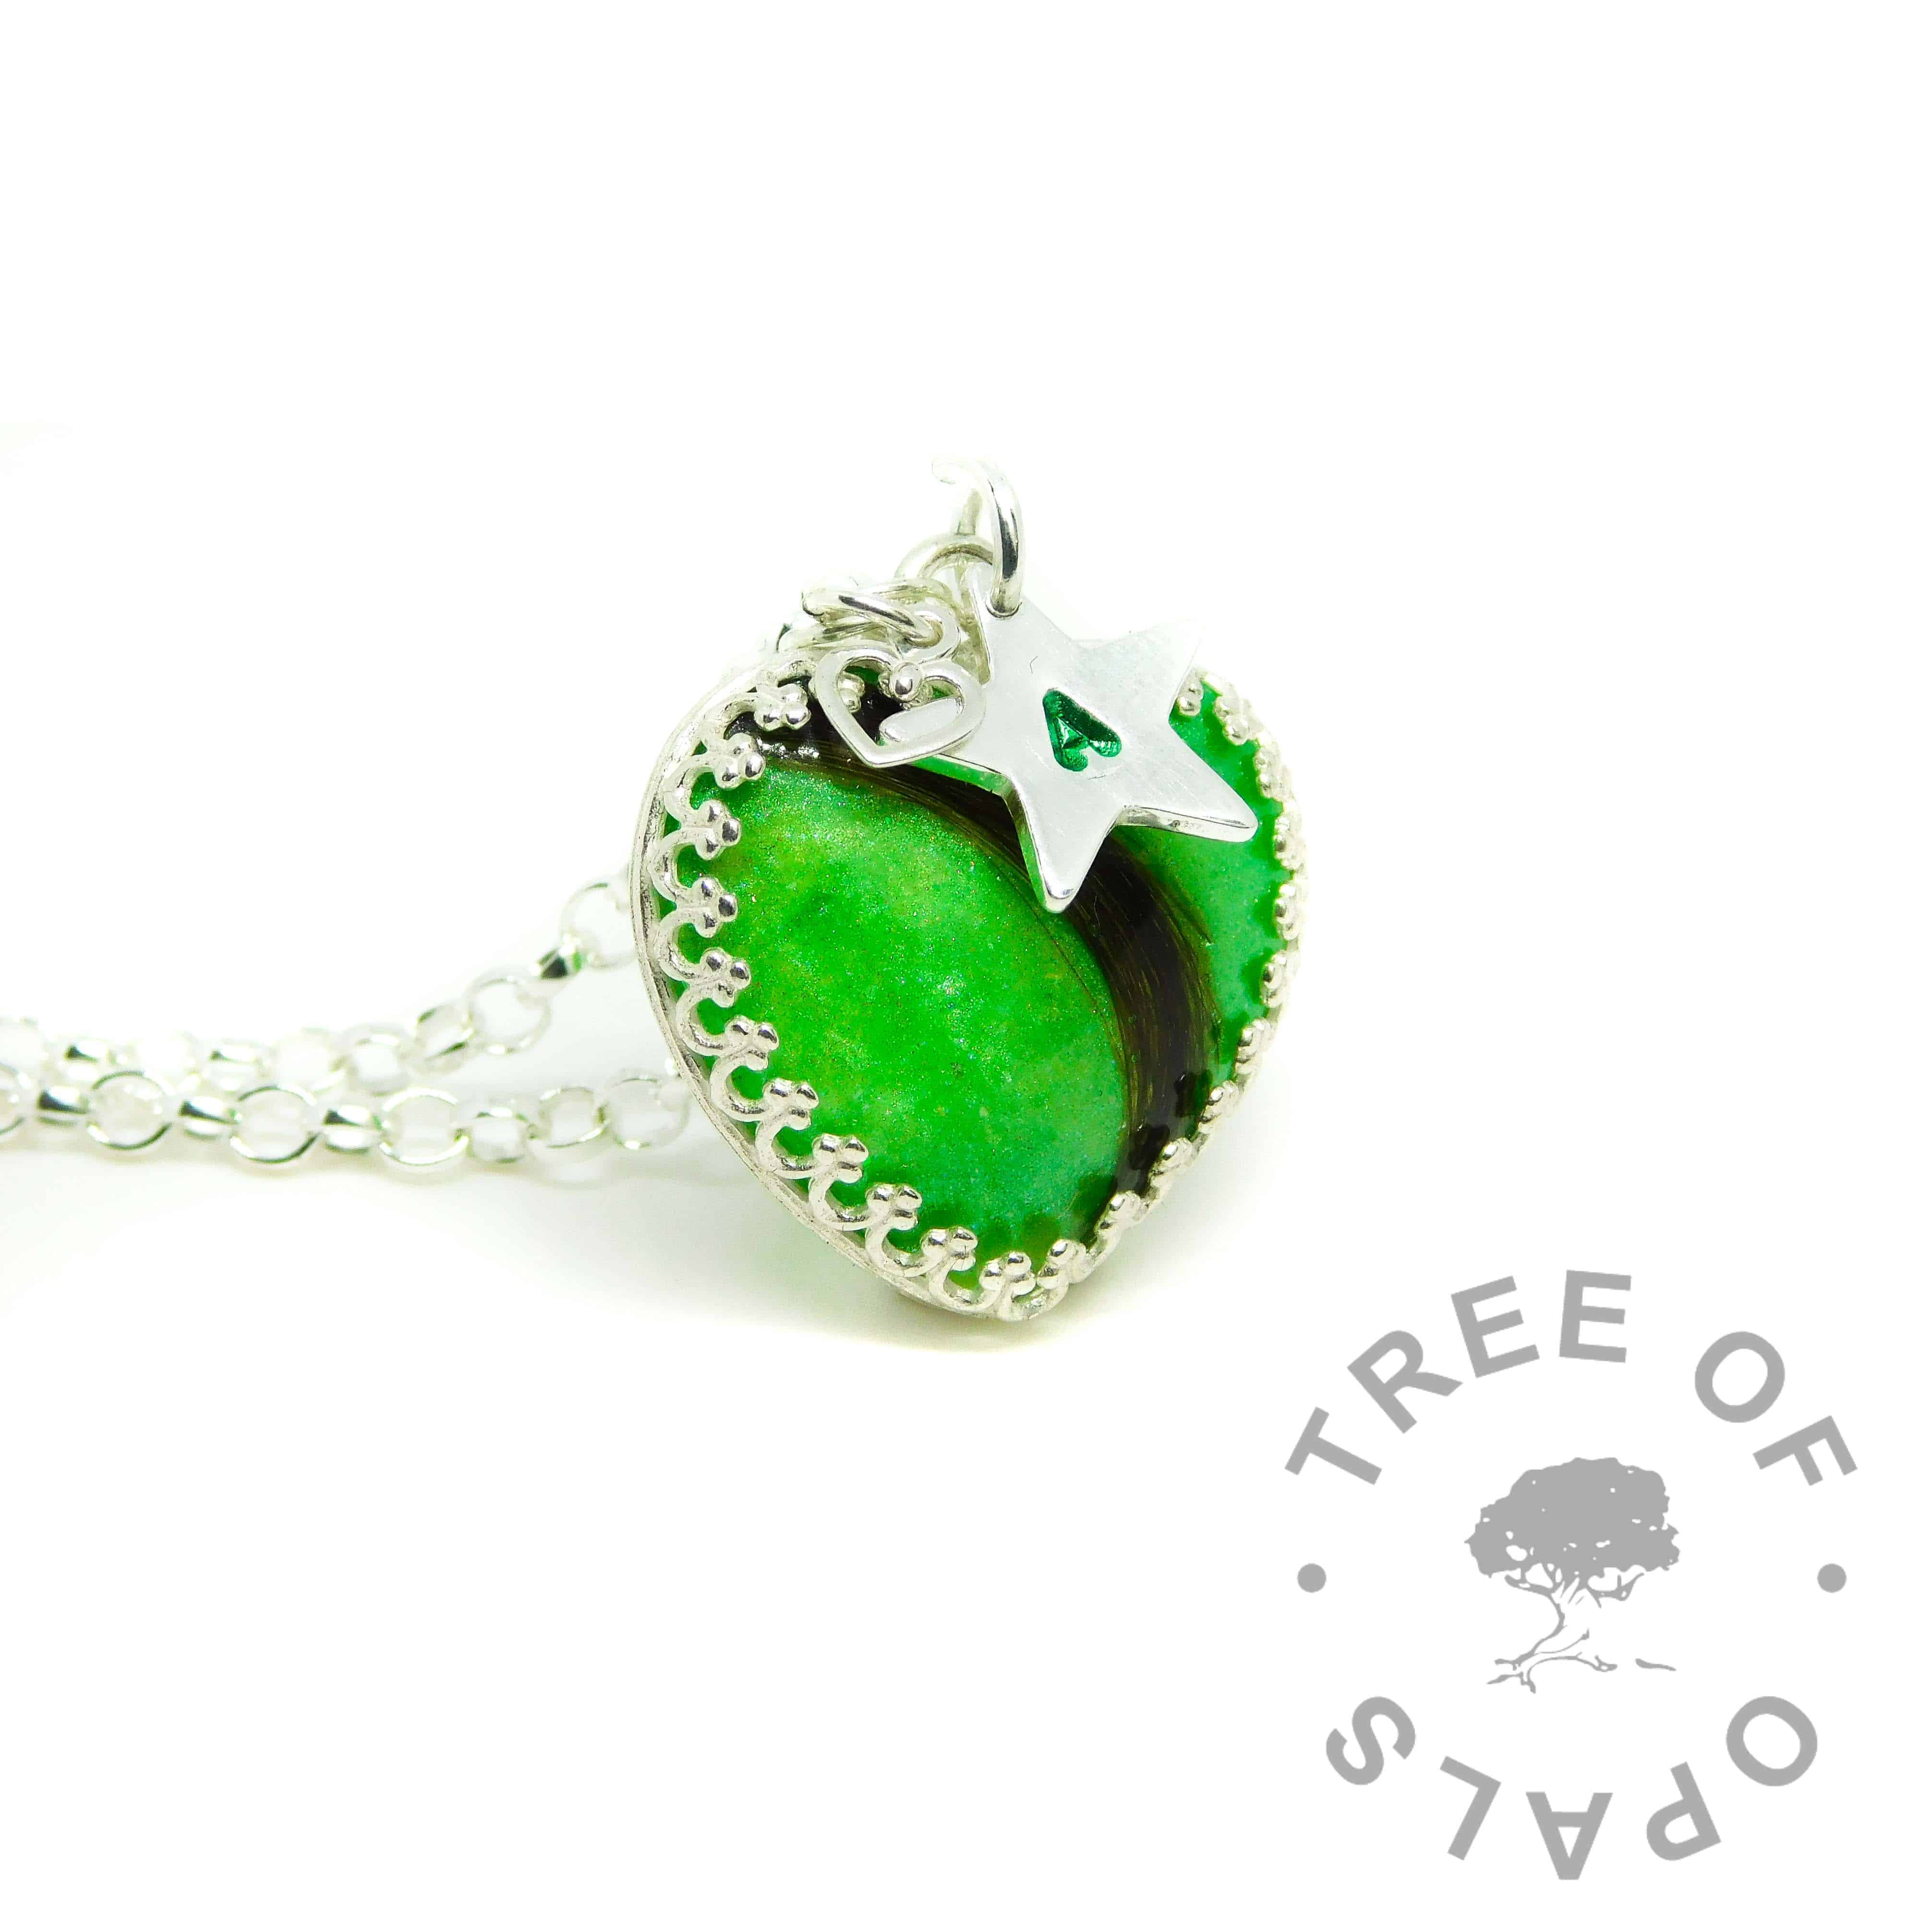 green lock of hair heart necklace with small star pendant, handstamped with a letter, medium classic chain upgrade